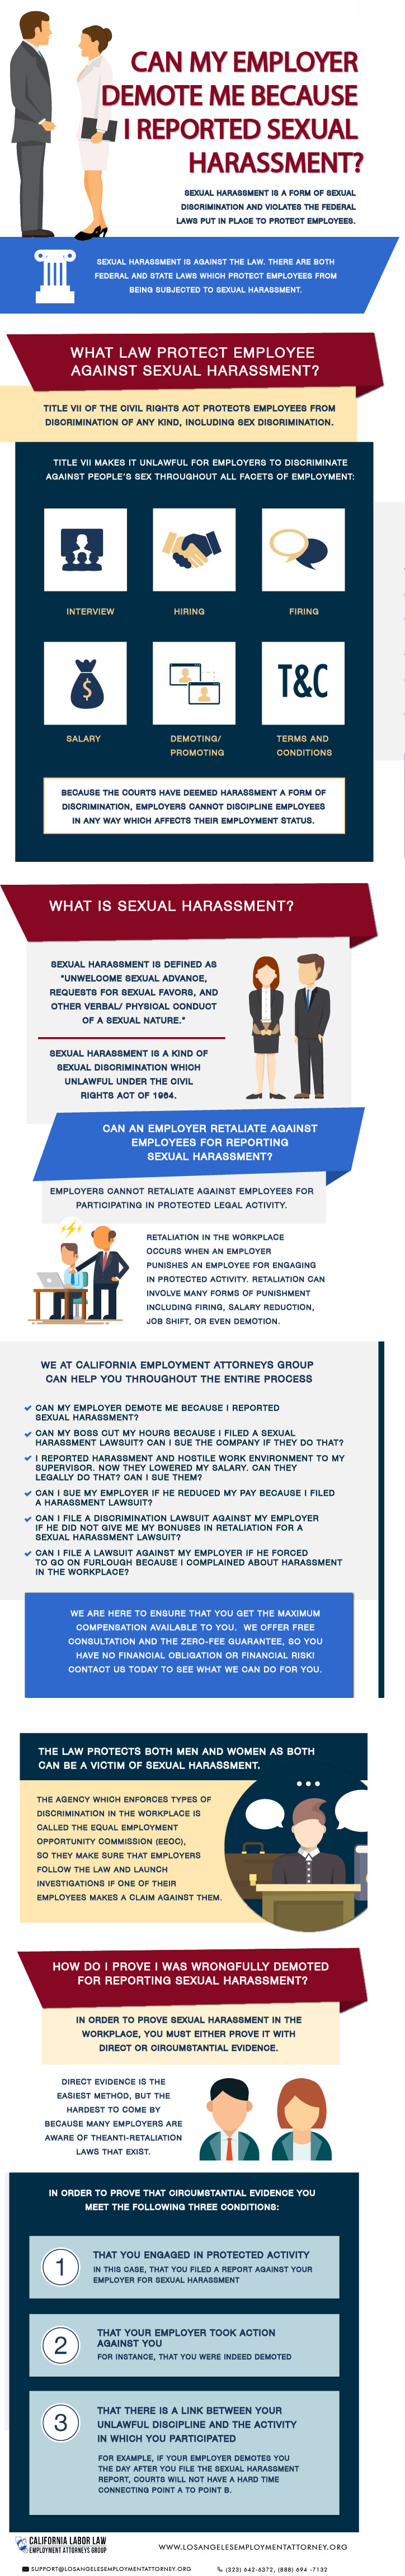 Can My Employer Demote Me Because I Reported Sexual Harassment - Inforgraphic